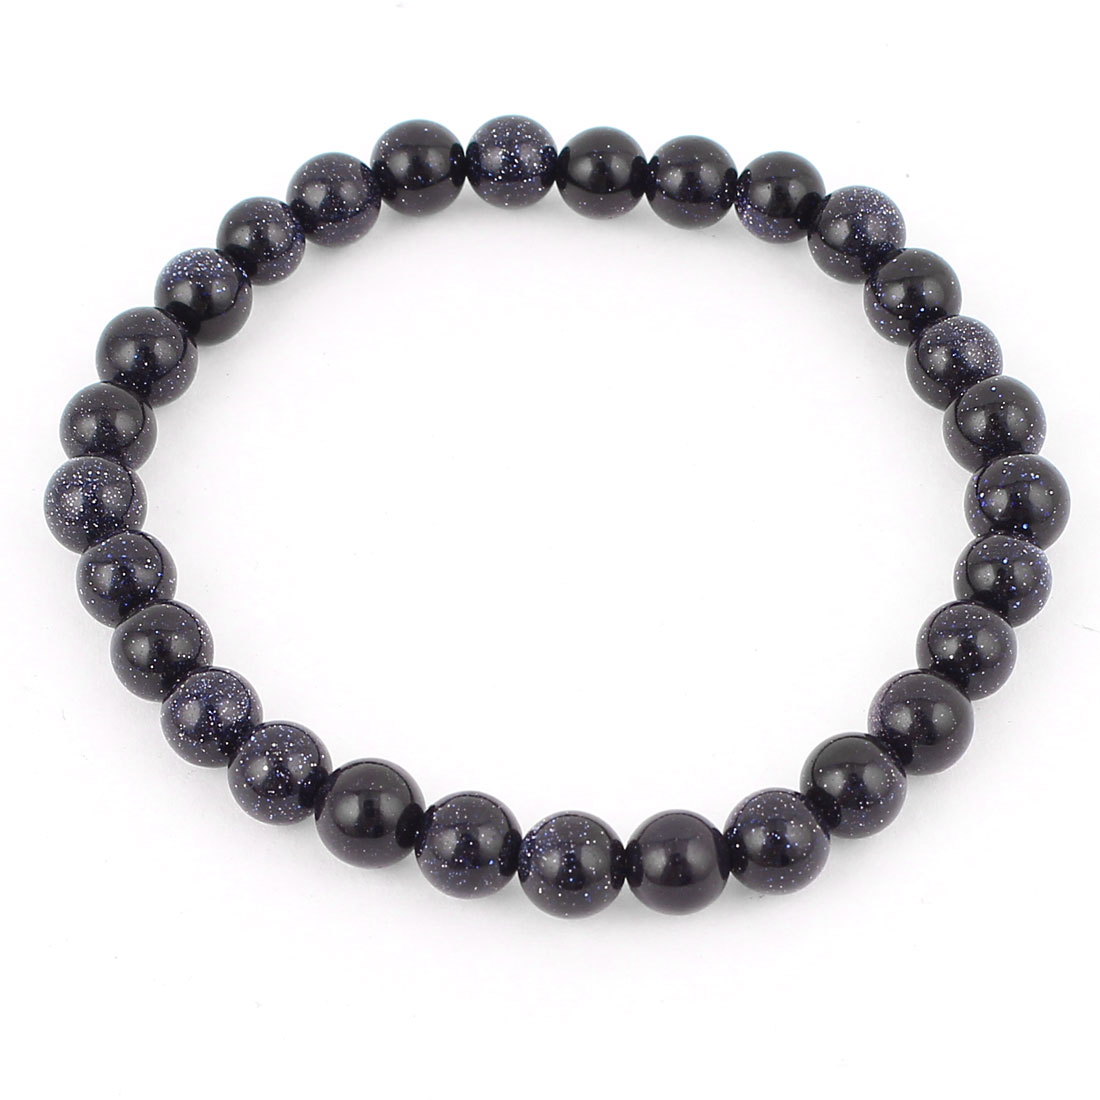 Woman Jewelry Round Faux Jade Beads Decor Elastic Wrist Bangle Bracelet Dark Blue